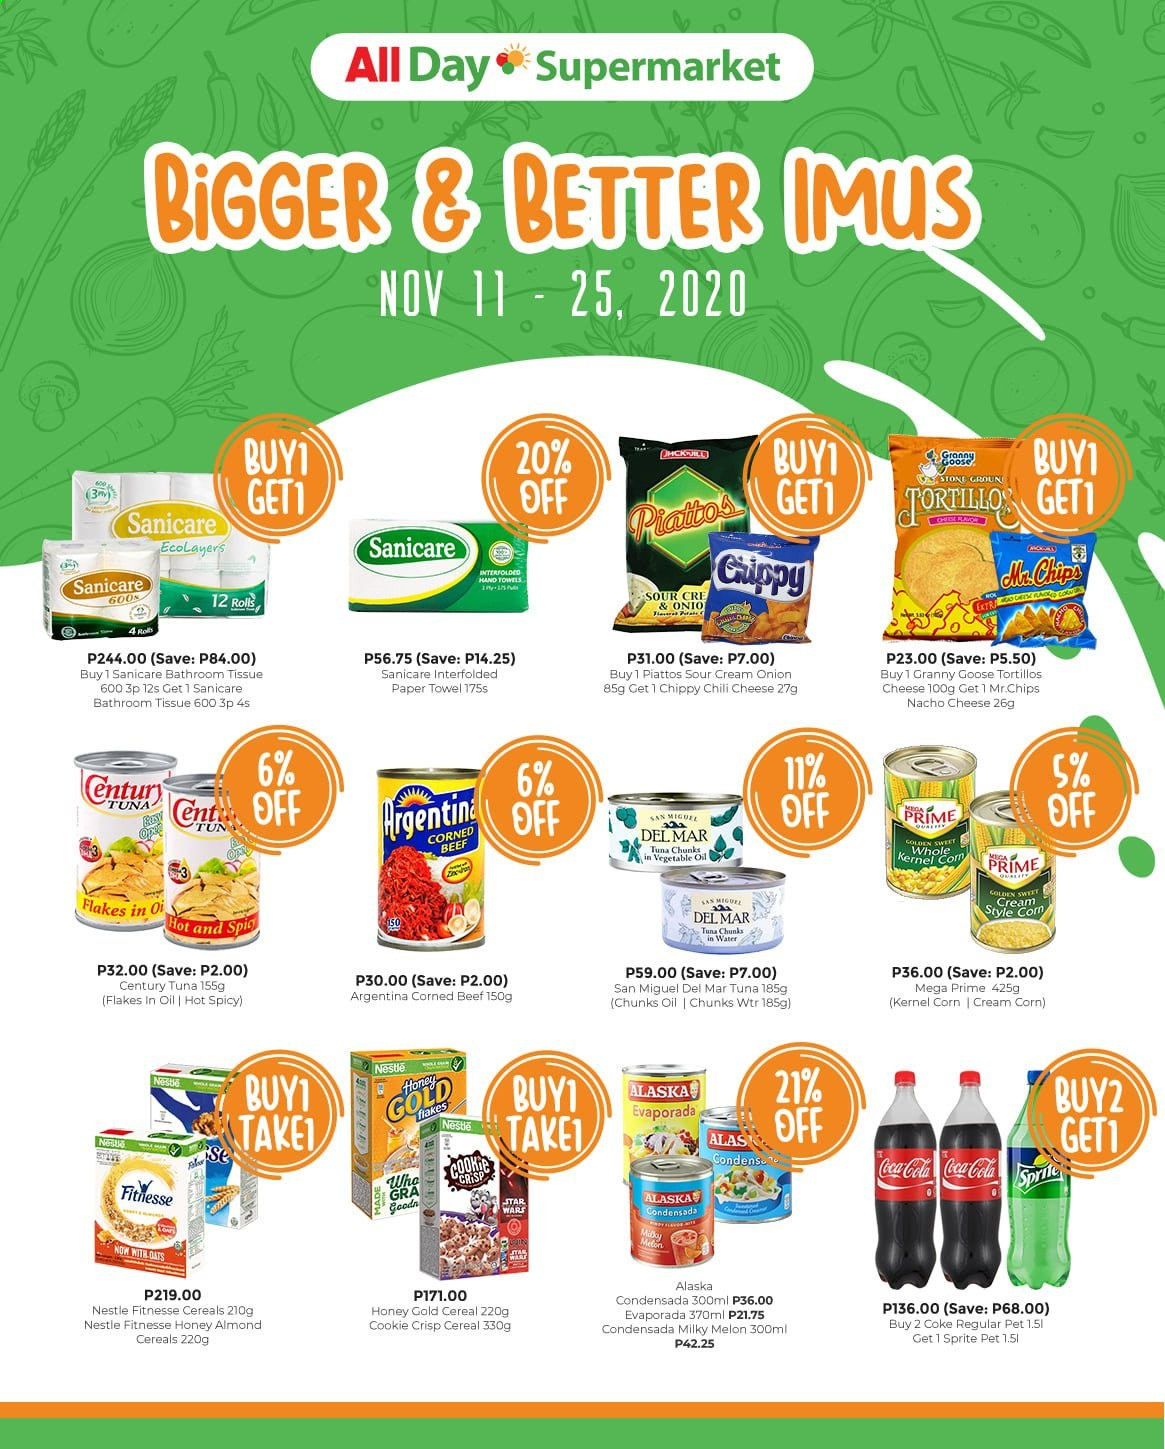 AllDay Supermarket offer  - 11.11.2020 - 25.11.2020 - Sales products - rolls, corn, onion, melons, tuna, cheese, sour cream, Nestlé, chips, oats, cereals, vegetable oil, honey, almonds, Coca-Cola, Sprite, San Miguel, goose, corned beef, bath tissue, tissues, paper towels, Sanicare. Page 1.